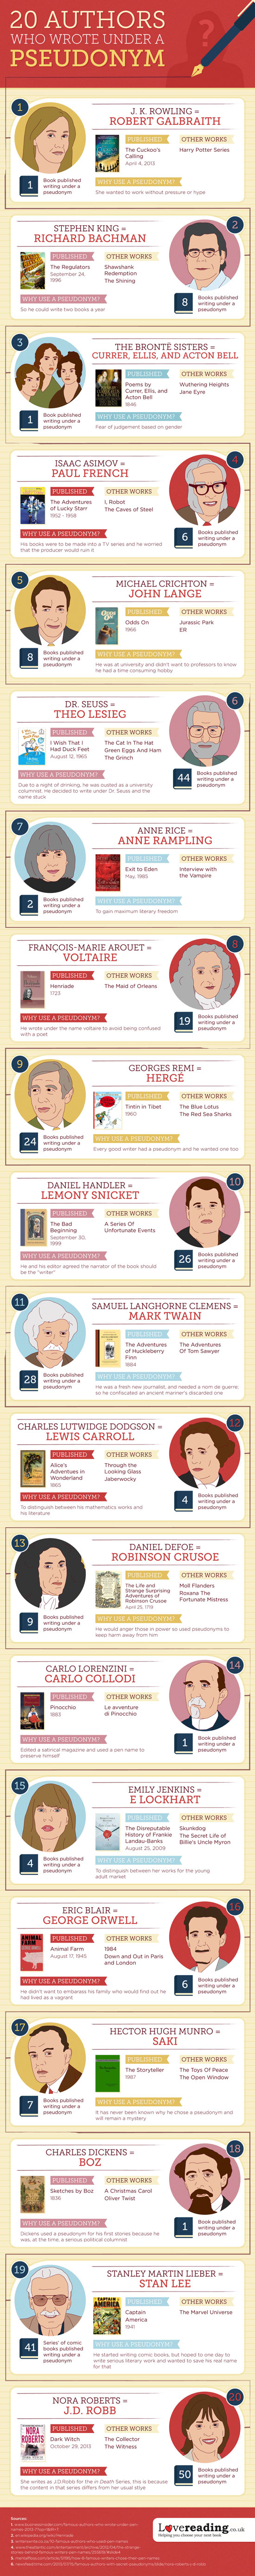 Famous authors who have written under a pseudonym and why